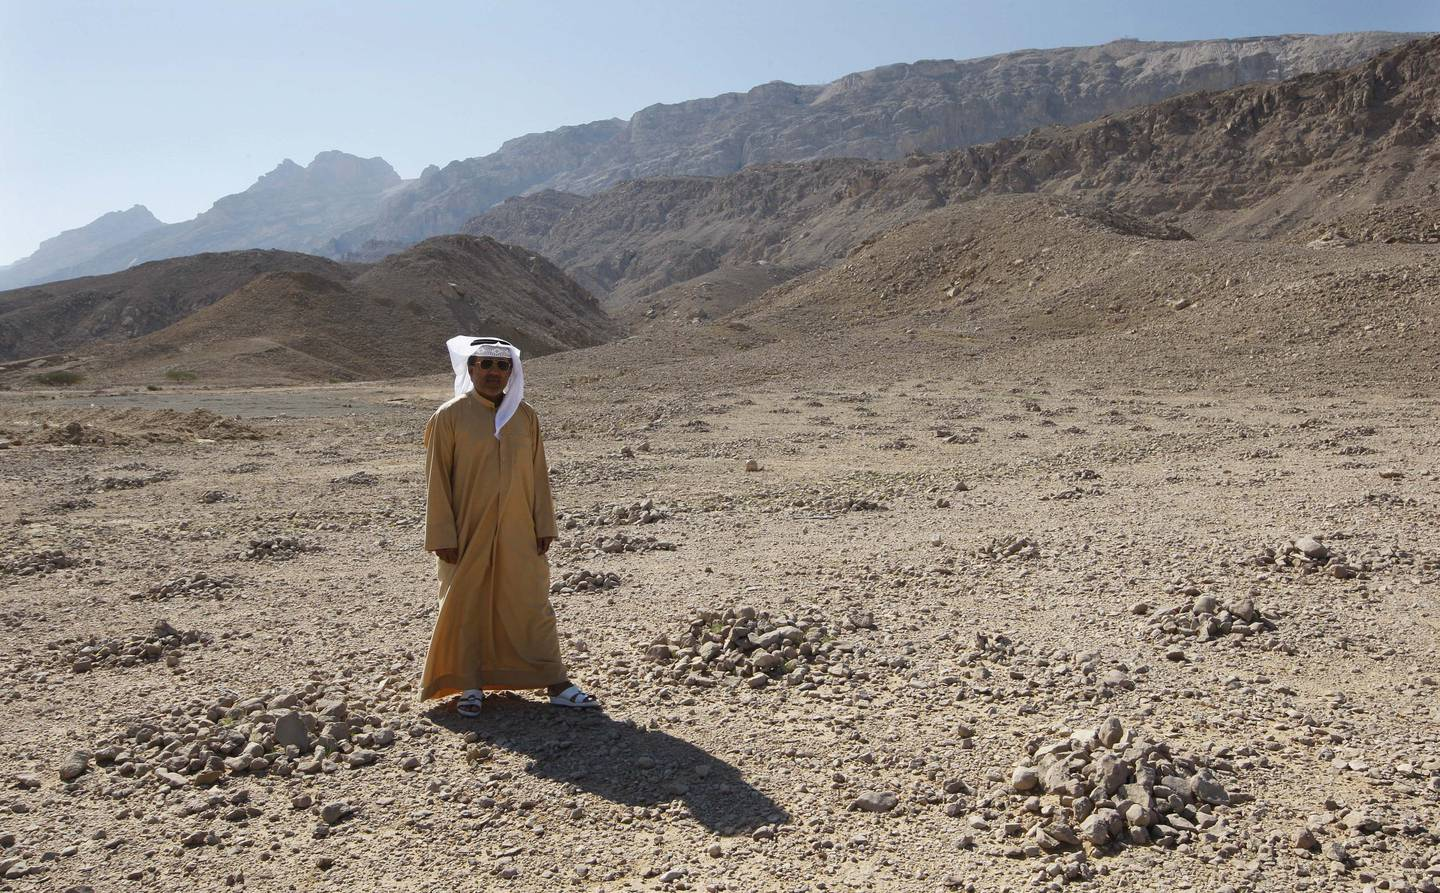 AL AIN 11th January 2010.  Hasan al Naboodah from the UAE University  stands beside some of the  small rock formations at Jebel Hafeet in Al Ain. Stephen Lock   /  The National   *** Local Caption ***  SL-rock-008.jpg